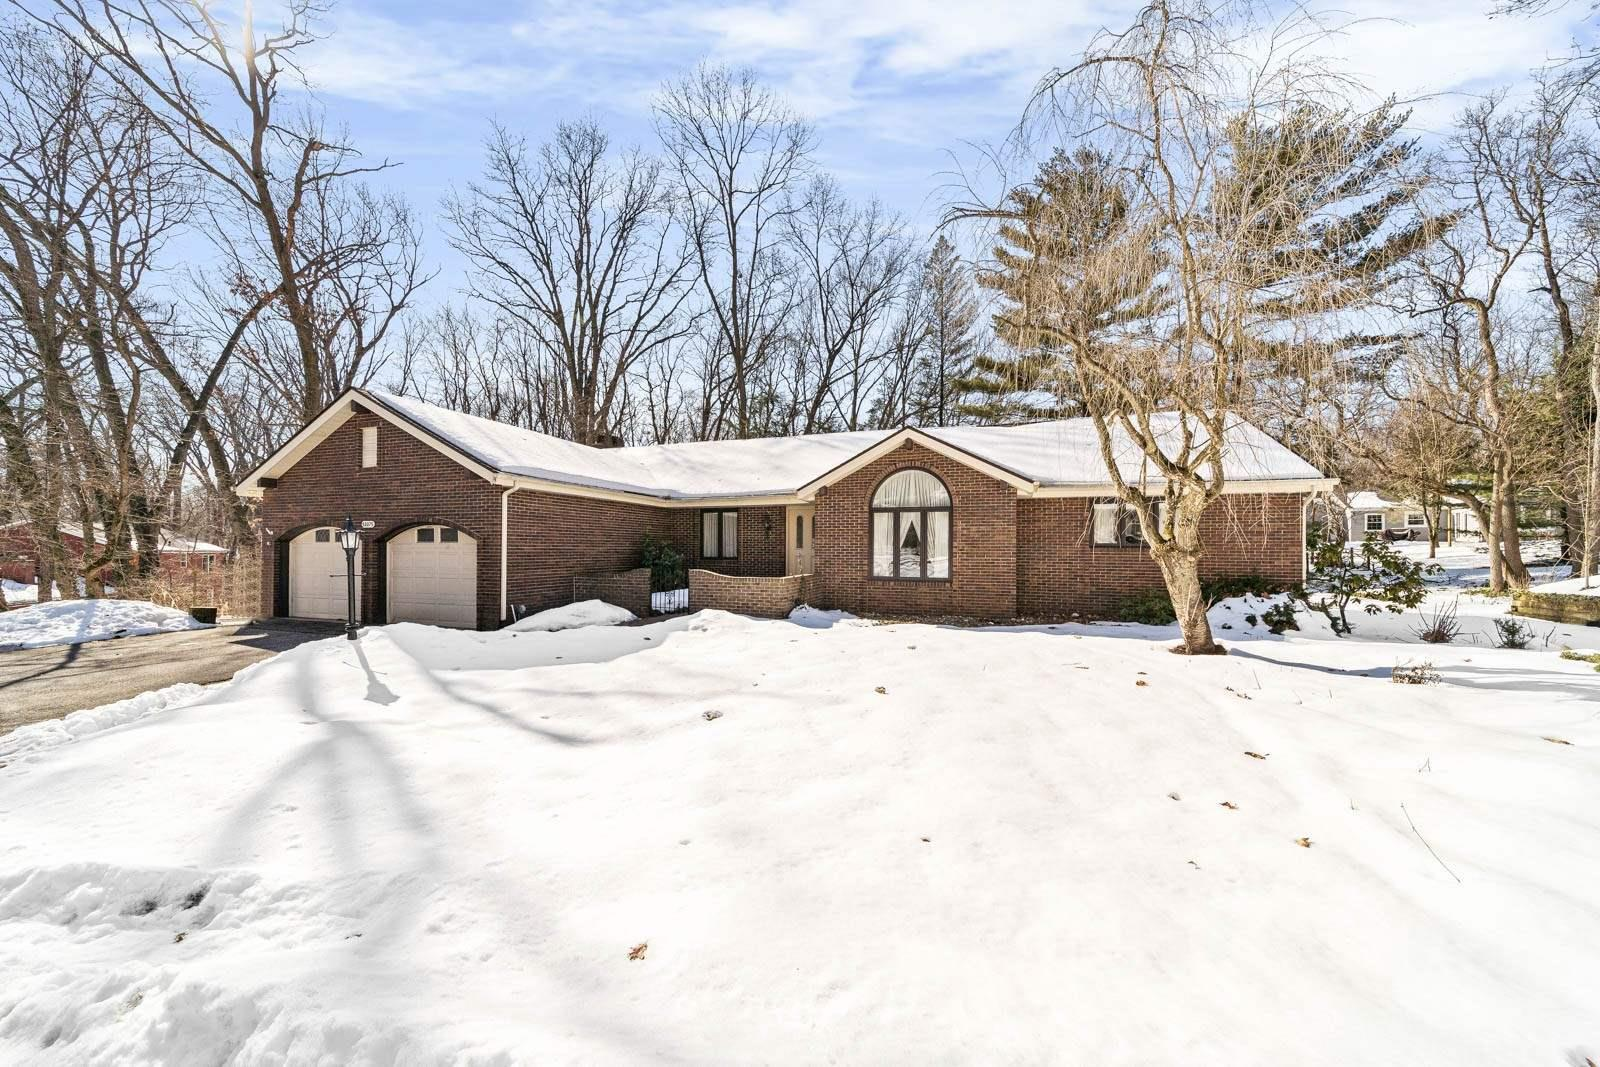 52075 Post Tavern Trail Granger, IN 46530